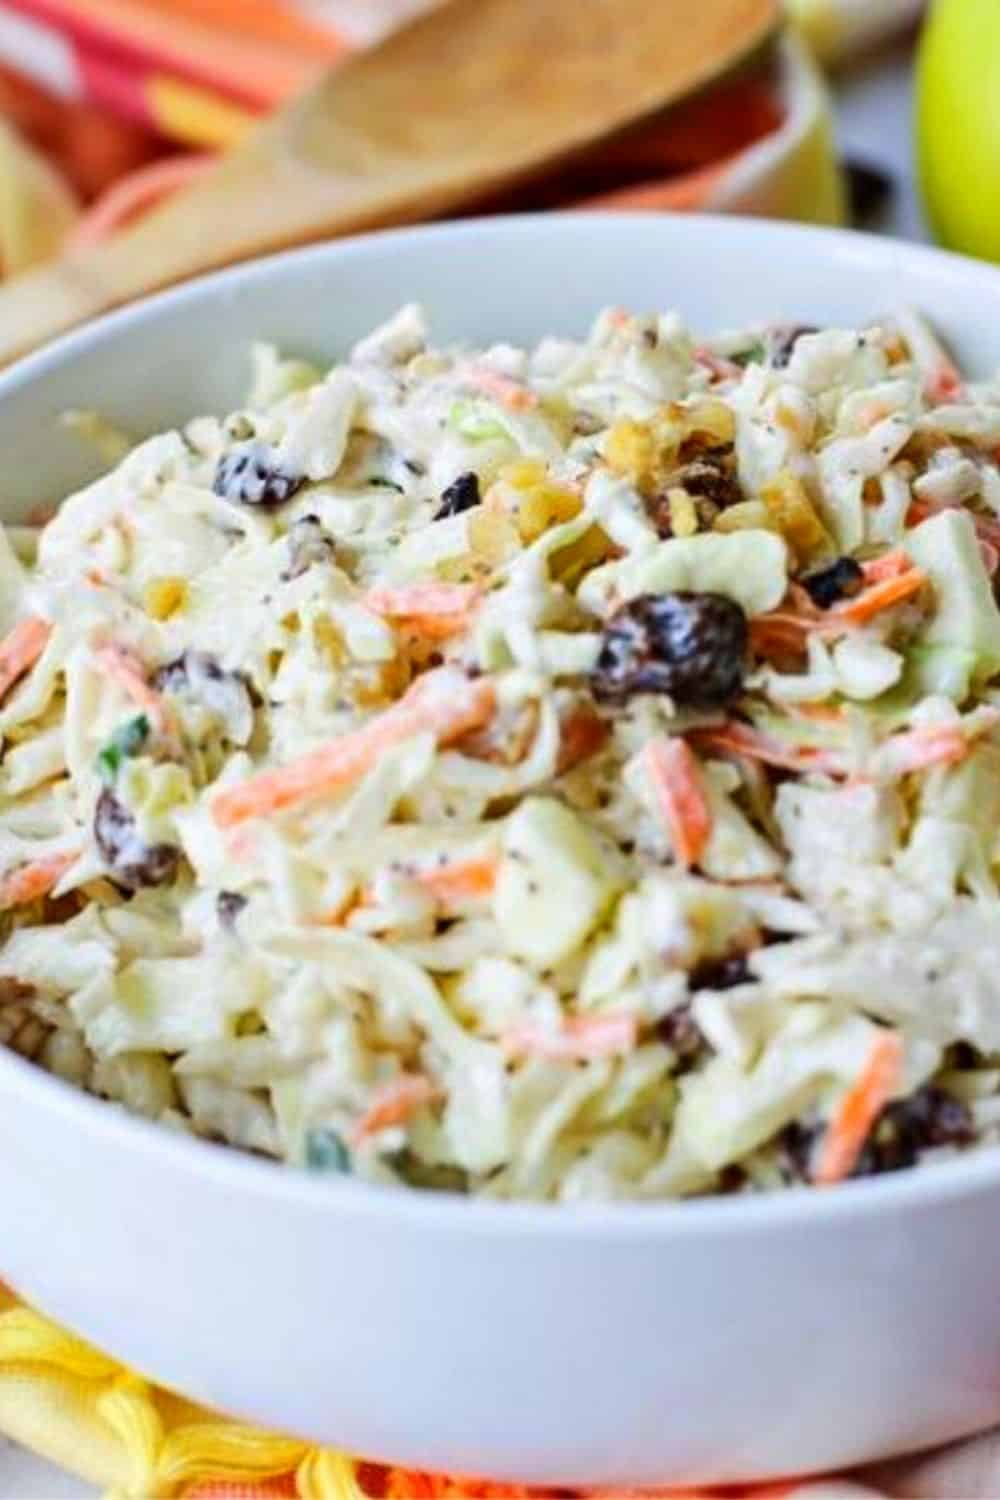 Coleslaw isn't just for picnics. Take your coleslaw to a new level with this tasty Homemade Apple Raisin Coleslaw. This homemade coleslaw recipe is the perfect side dish to serve any time of year. Ready in just 10 minutes, this delicious southern coleslaw recipe is topped with a creamy homemade dressing. It's the perfect blend of sweet and savory. #coleslaw #easyrecipe #homemadecoleslaw